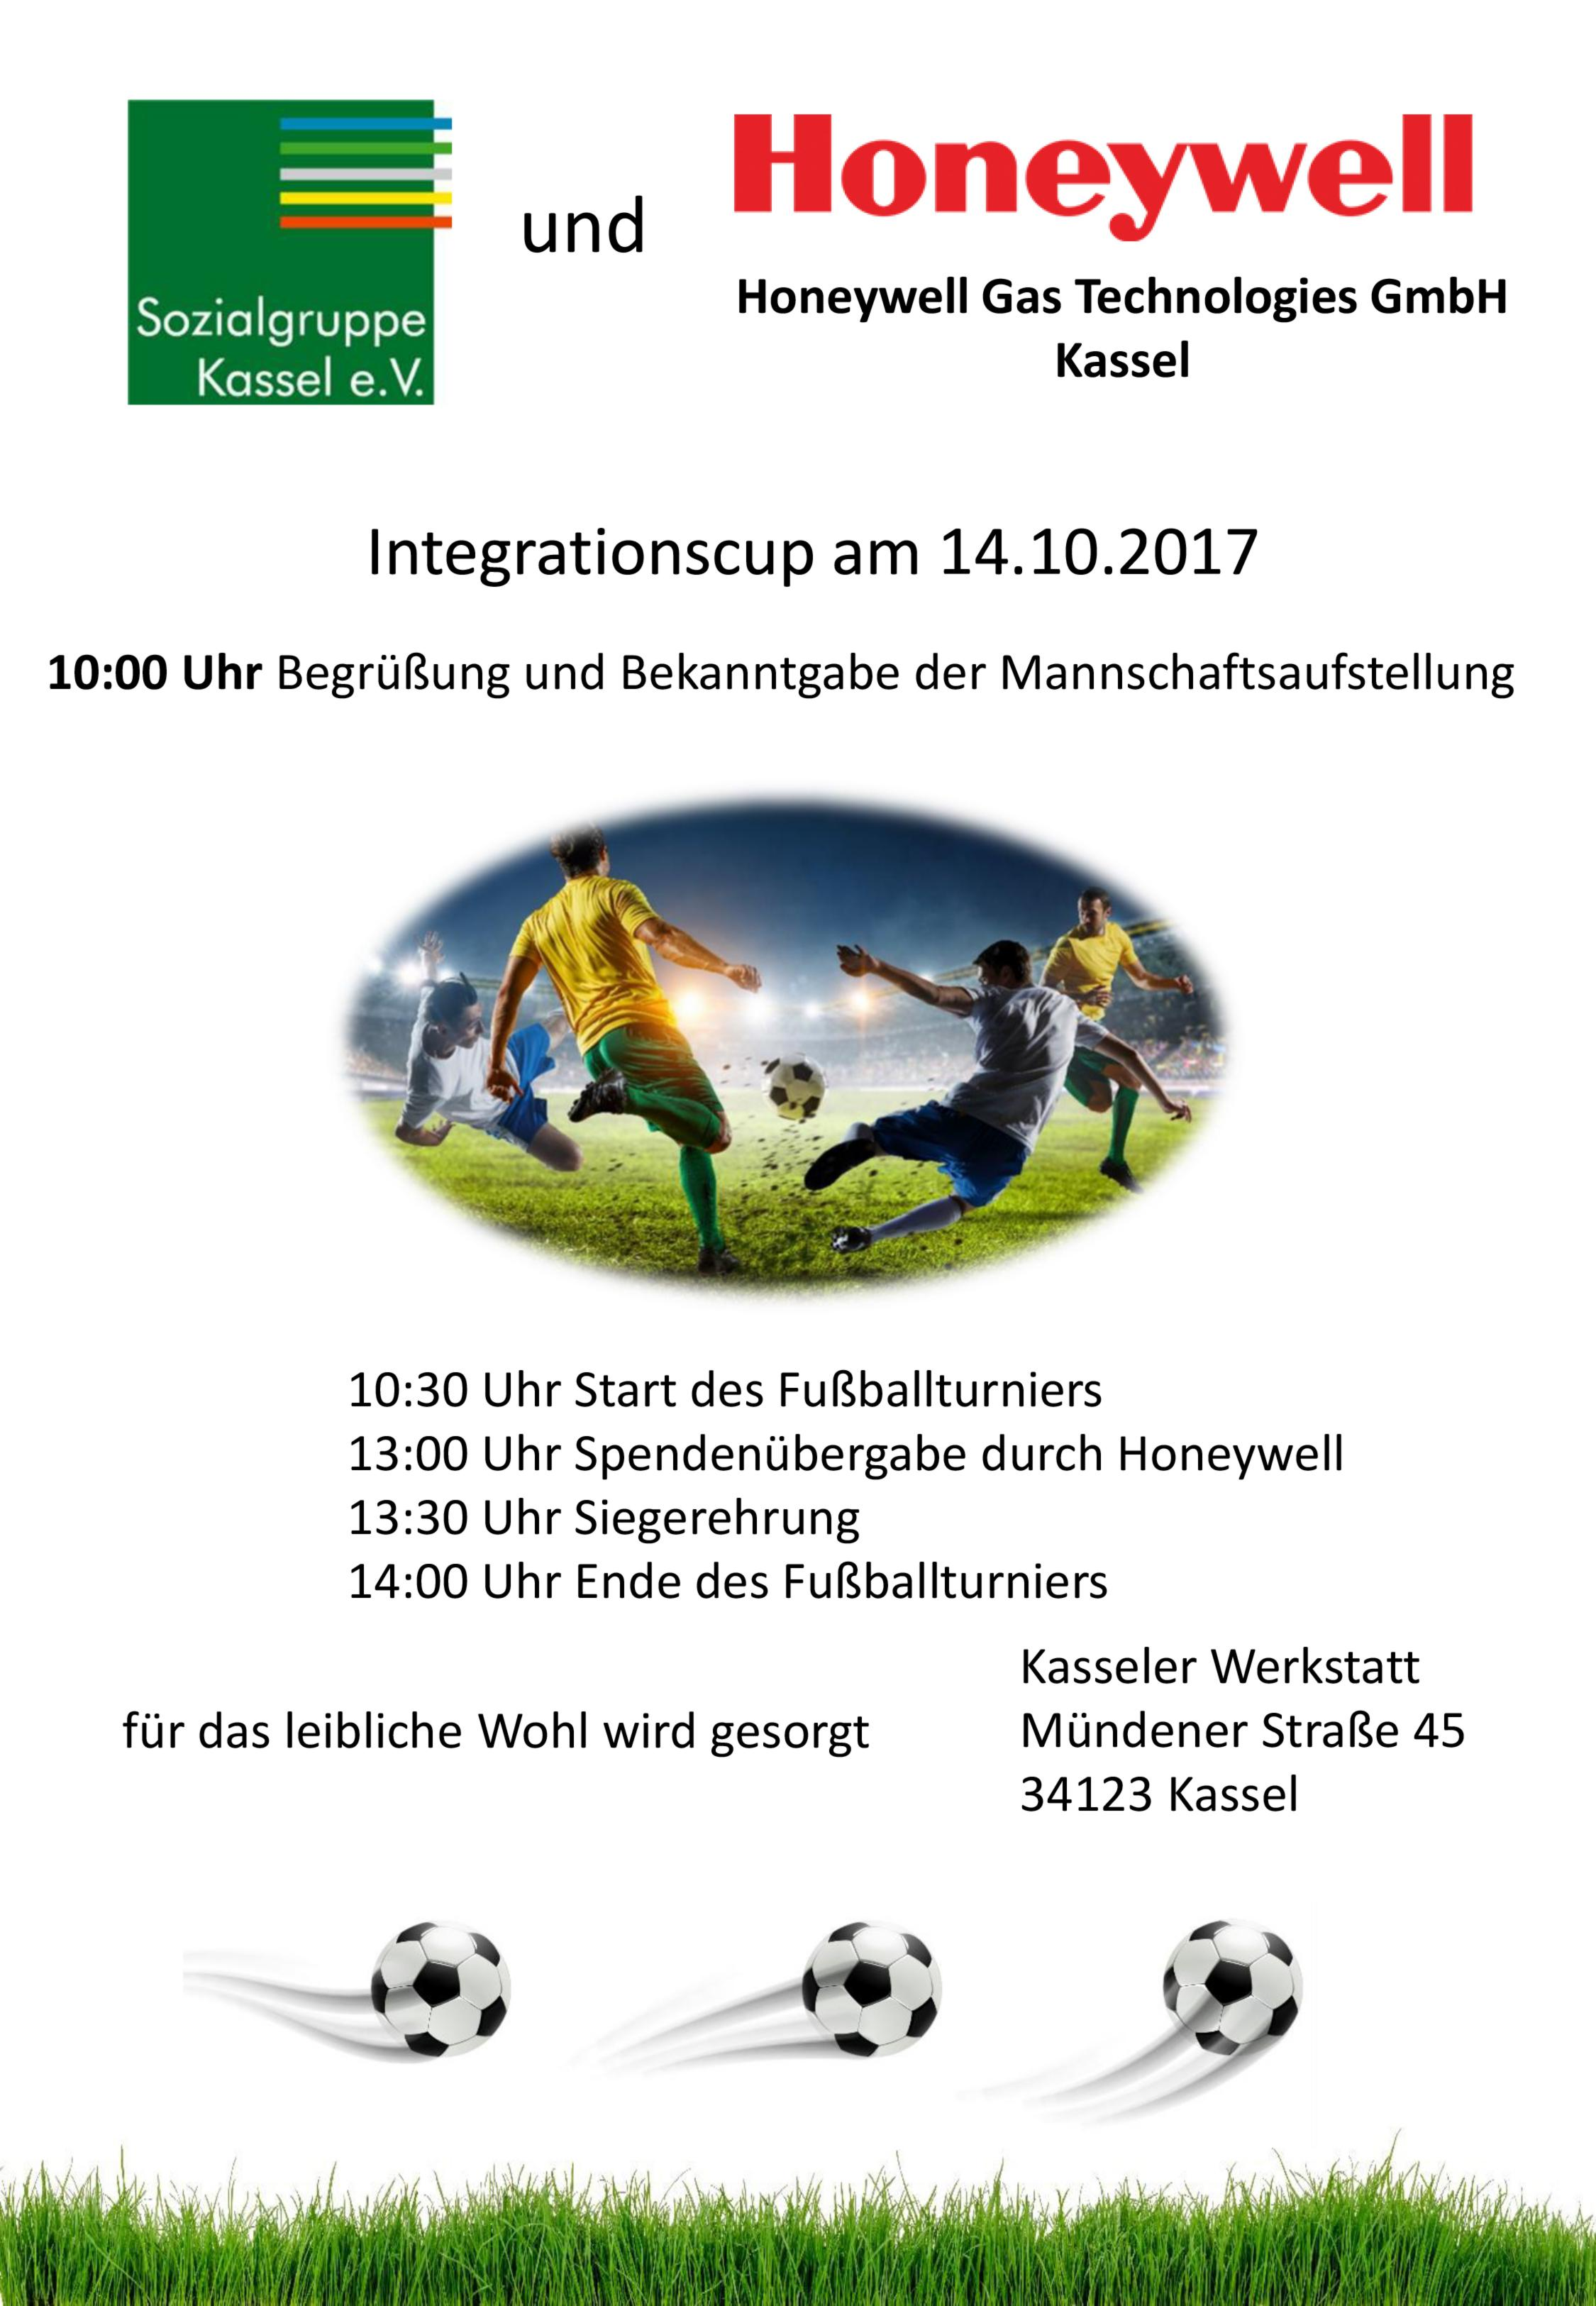 KSW_Flyer_Integrationscup_2017